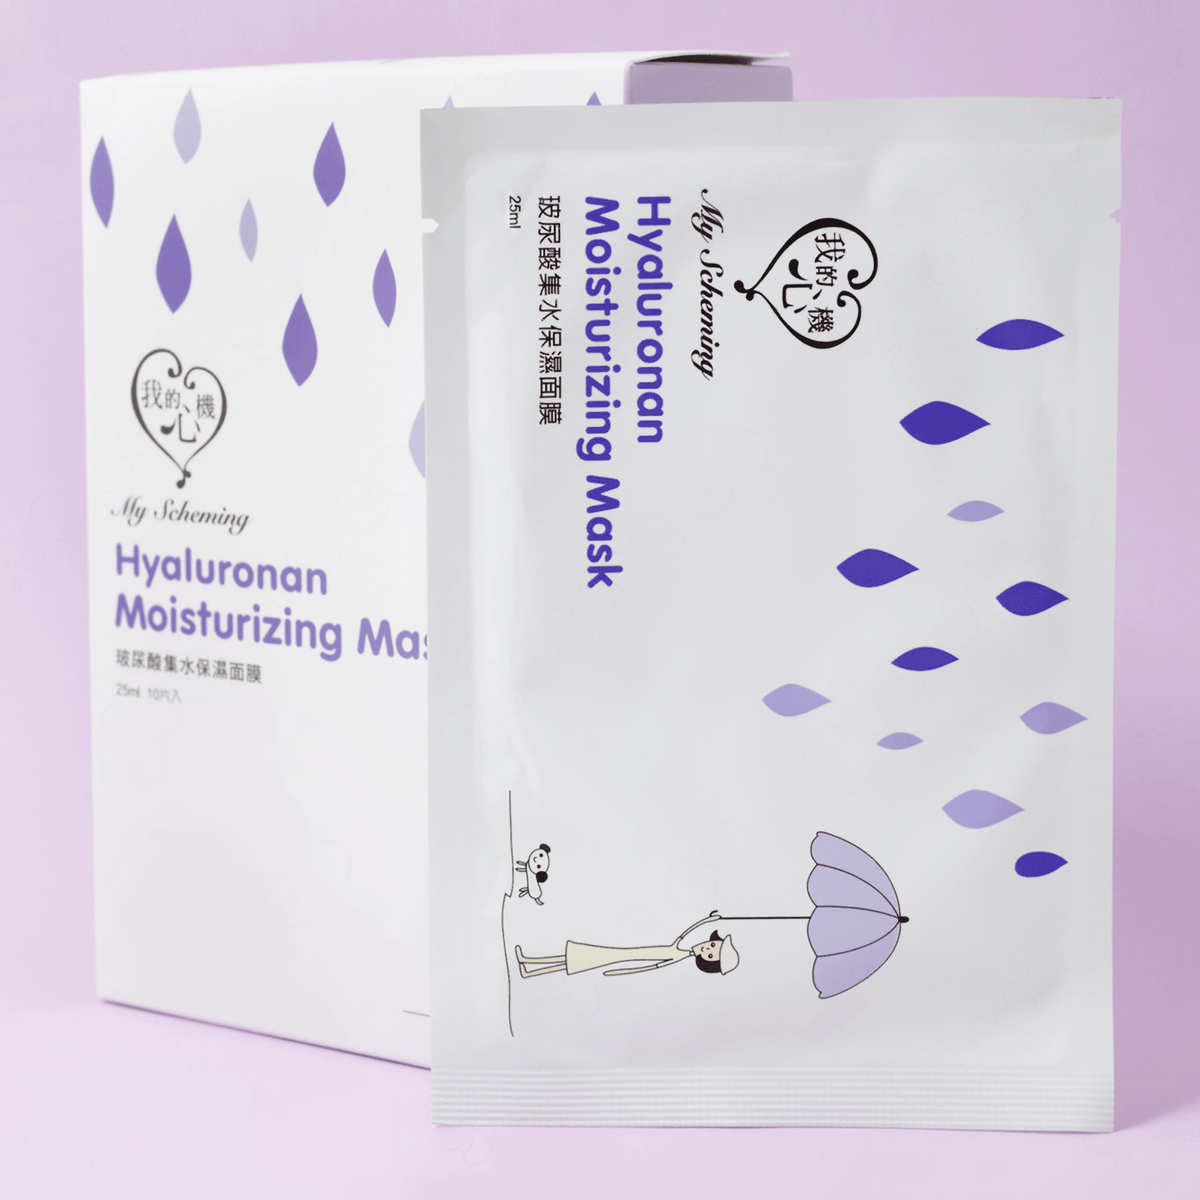 My Scheming Hyaluronan Hydrating Mask